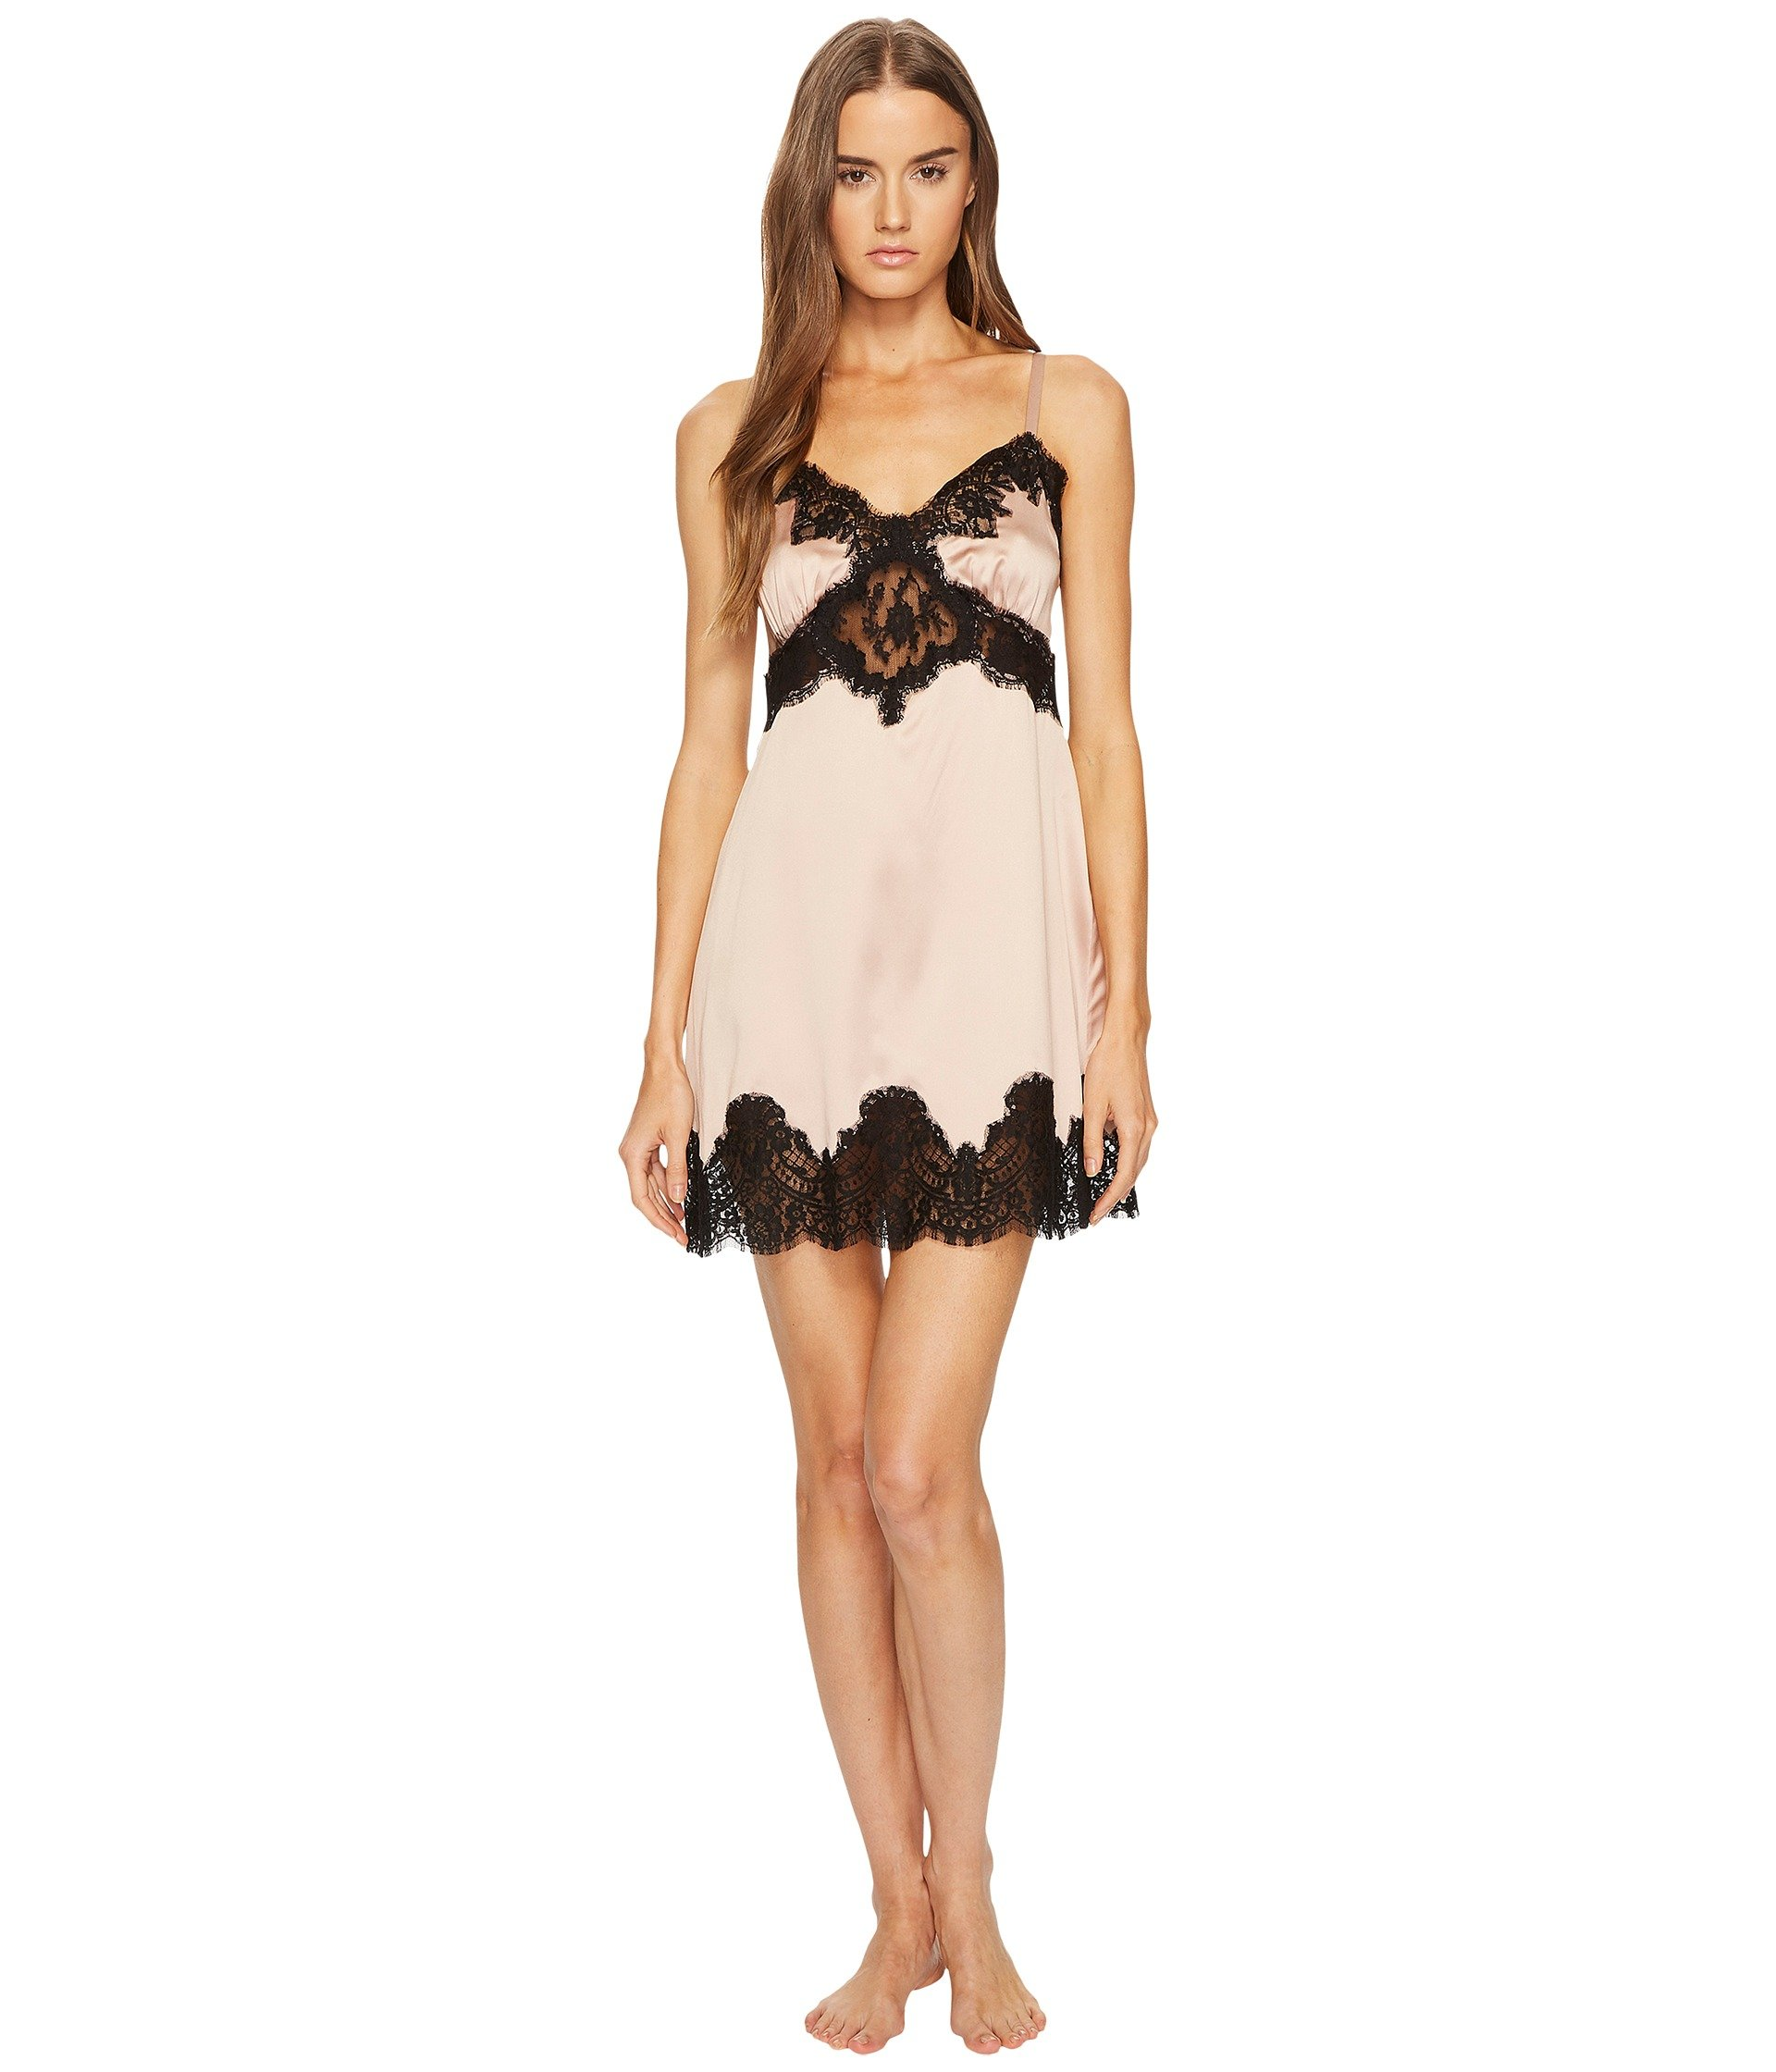 Babydoll Dolce andamp; Gabbana Silk with Lace Nightgown Sottoveste  + Dolce & Gabbana en VeoyCompro.net